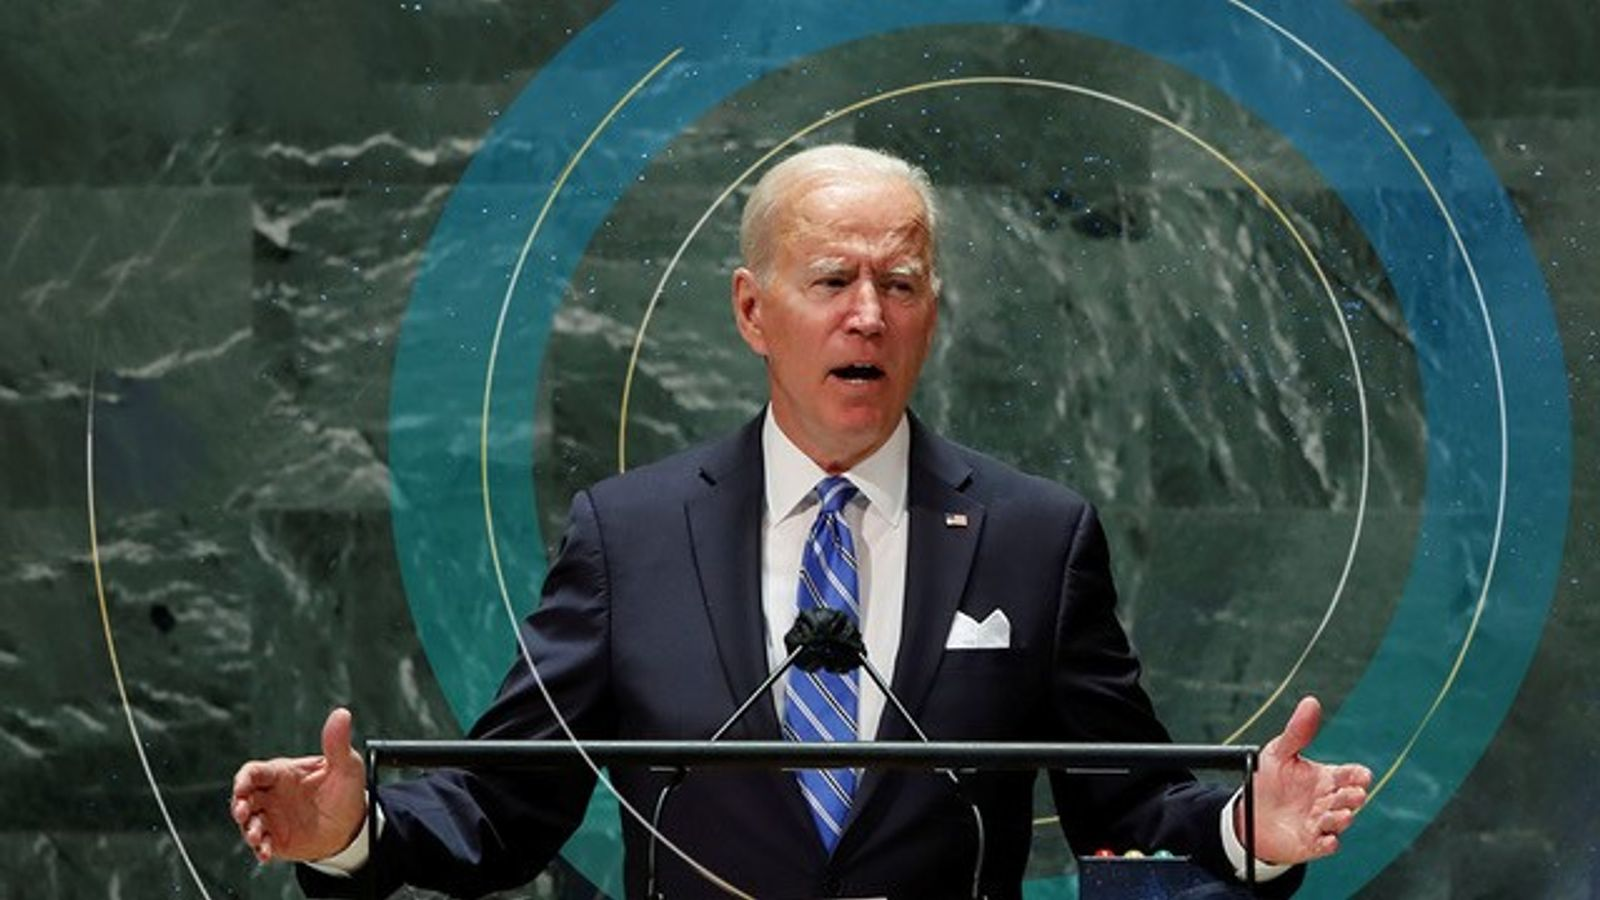 Key part of Joe Biden's climate legislation could be dropped after opposition from senior Democrat in fuel-rich state